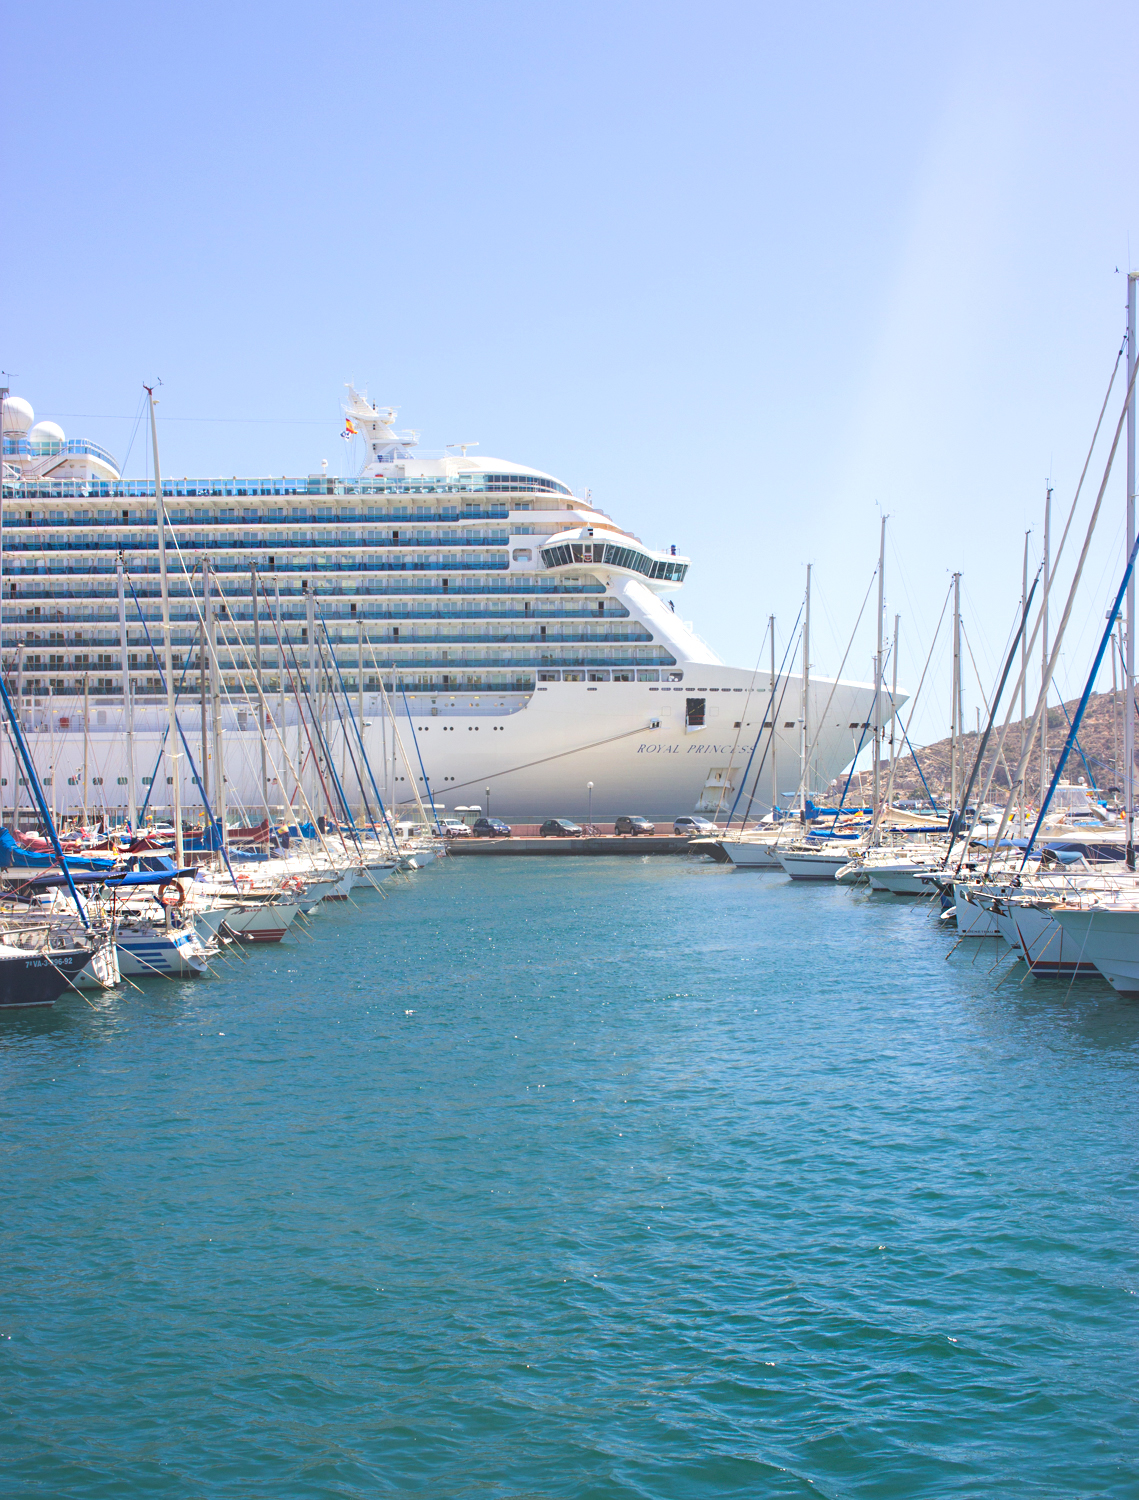 livvyland-blog-olivia-watson-princess-cruise-cabin-balcony-mediterranean-coast-royal-princess-cartagena-spain-port